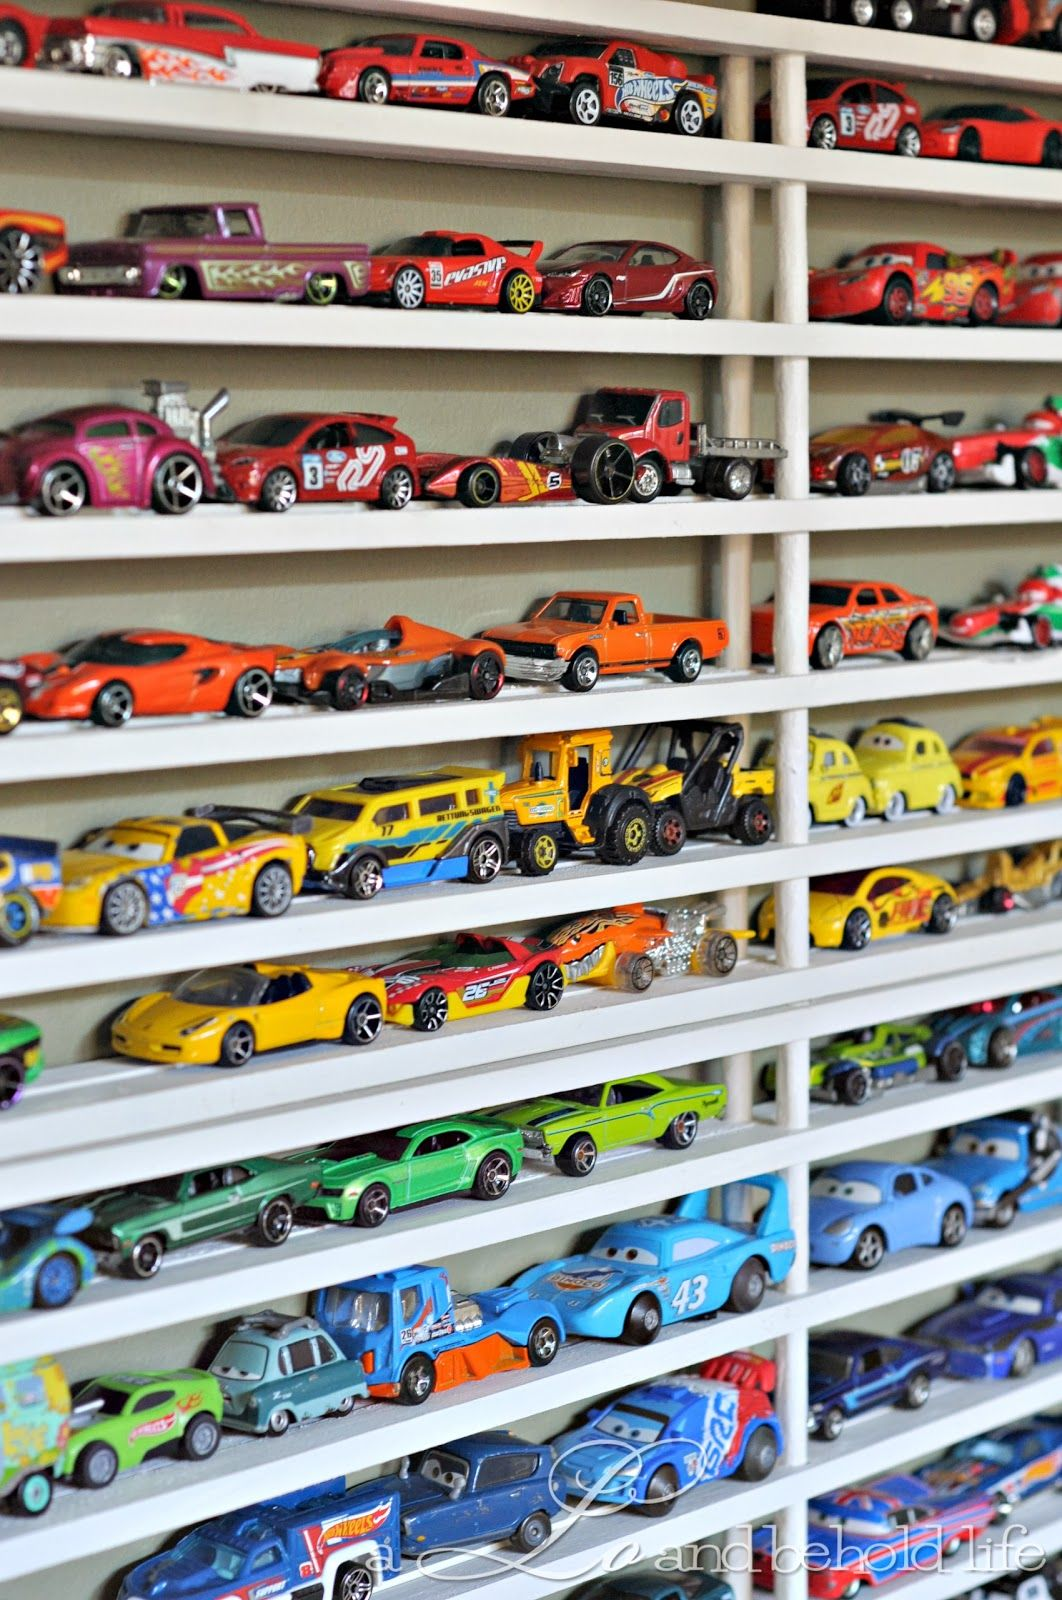 Diy Toy Car Display Storage From Cheap Shoe Racks So Fun For Boys Who Love Cars Toy Car Display